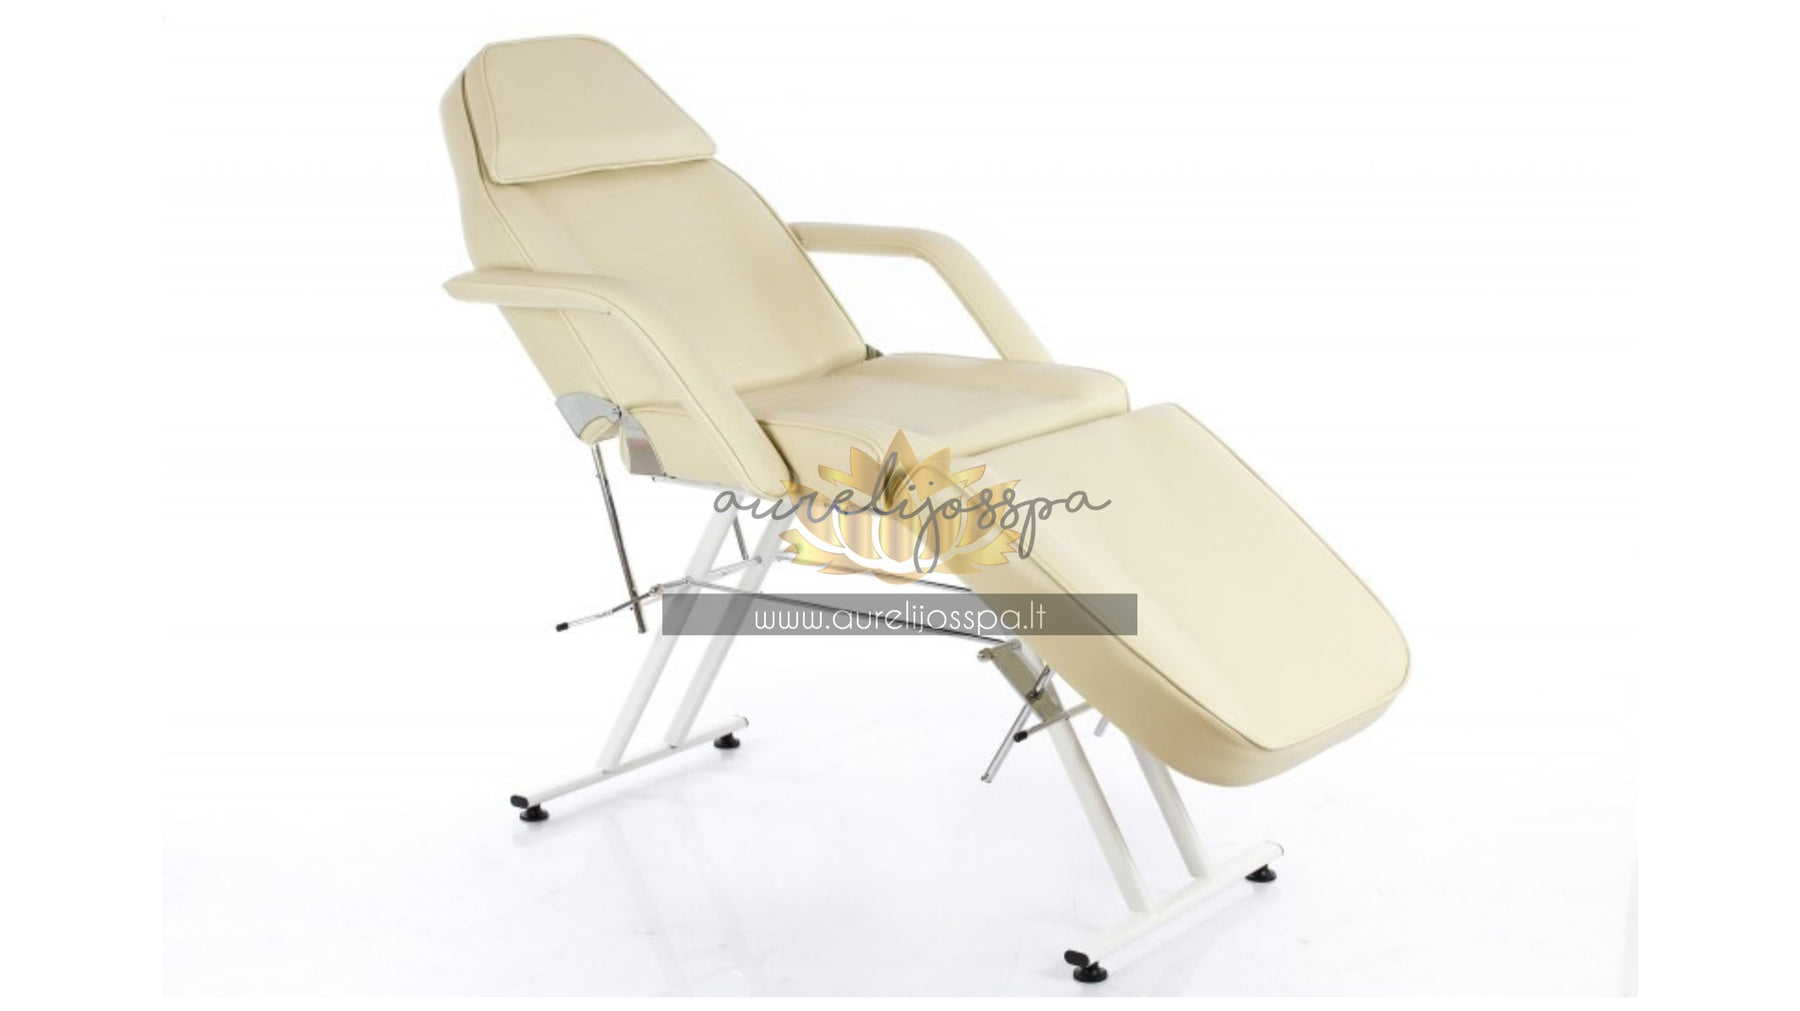 Cosmetic beds armchairs beds couches - AurelijosSPA